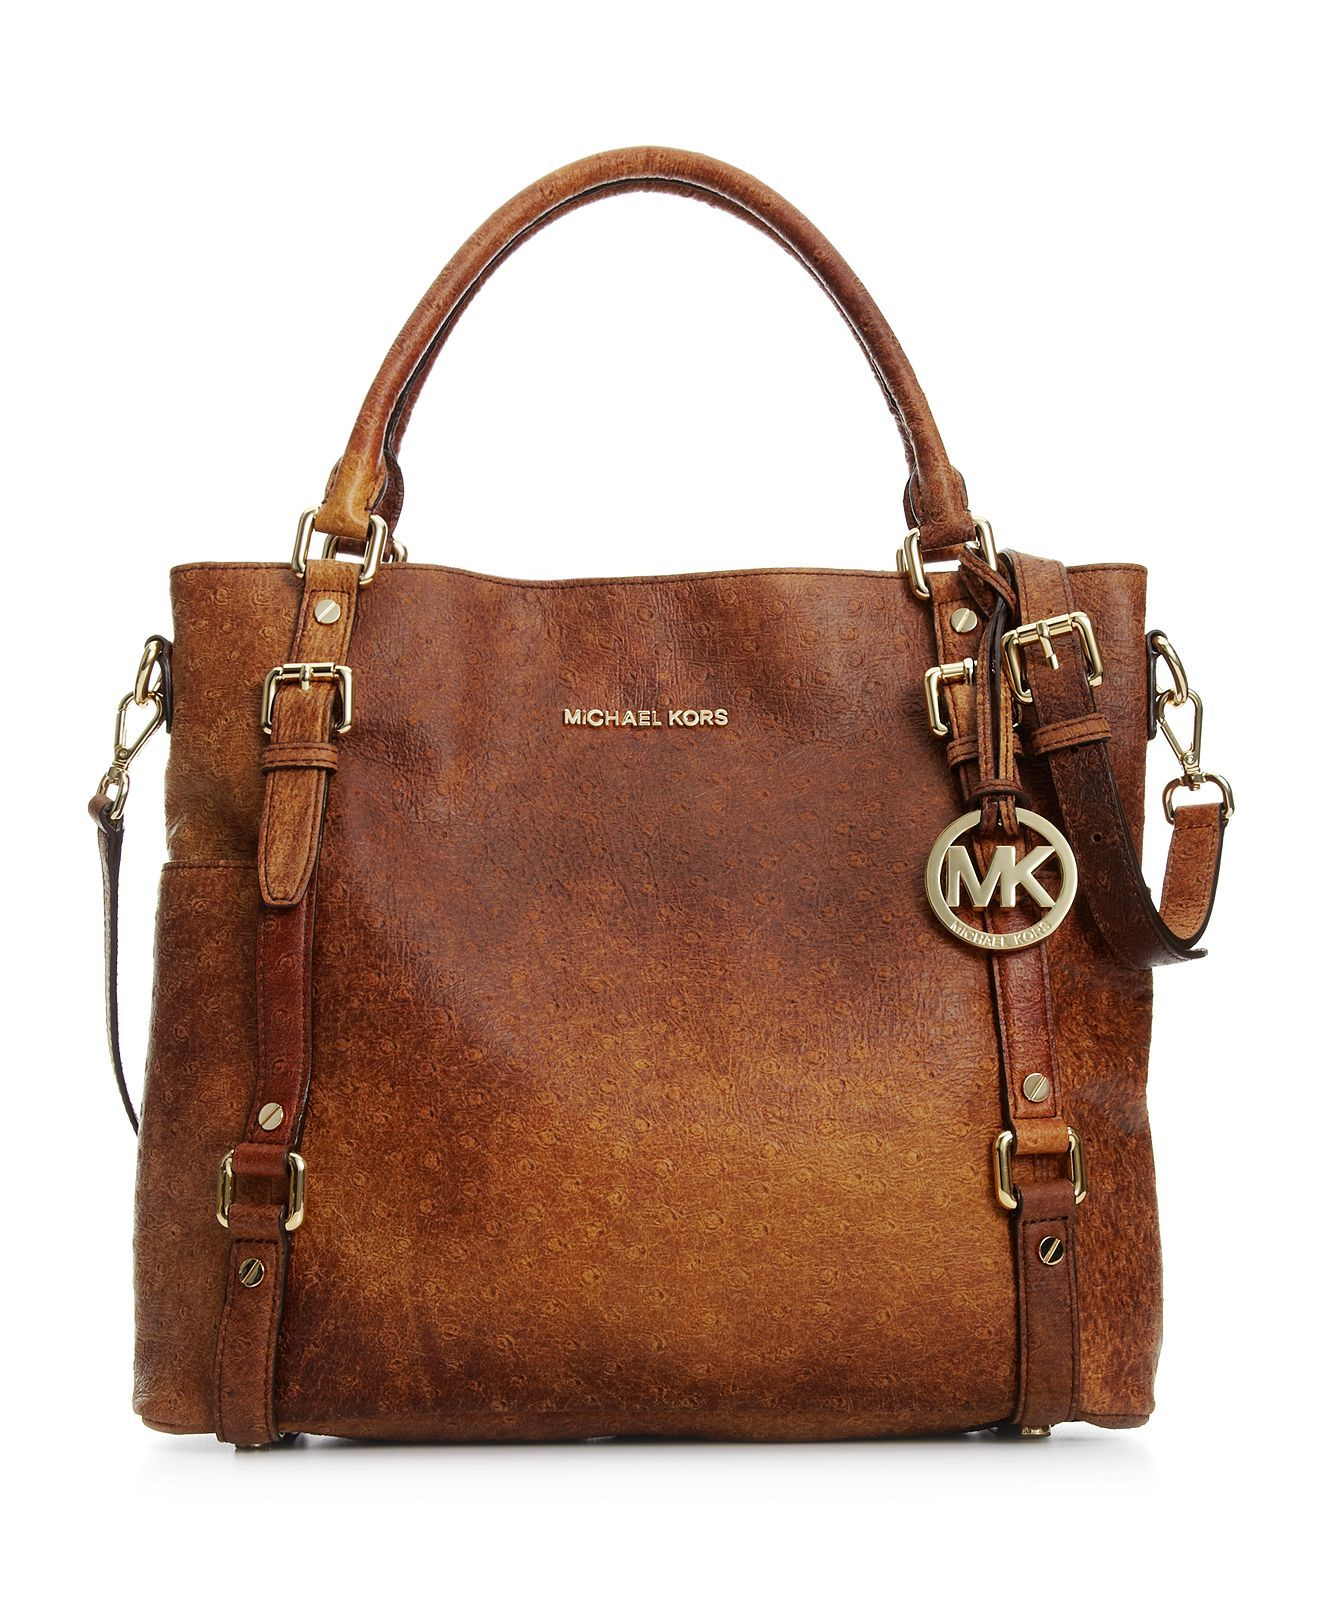 61b783b3930a Michael Kors Bedford Ostrich Tote. Nice, but why do we have to have names  on everything? Quality should speak for itself~